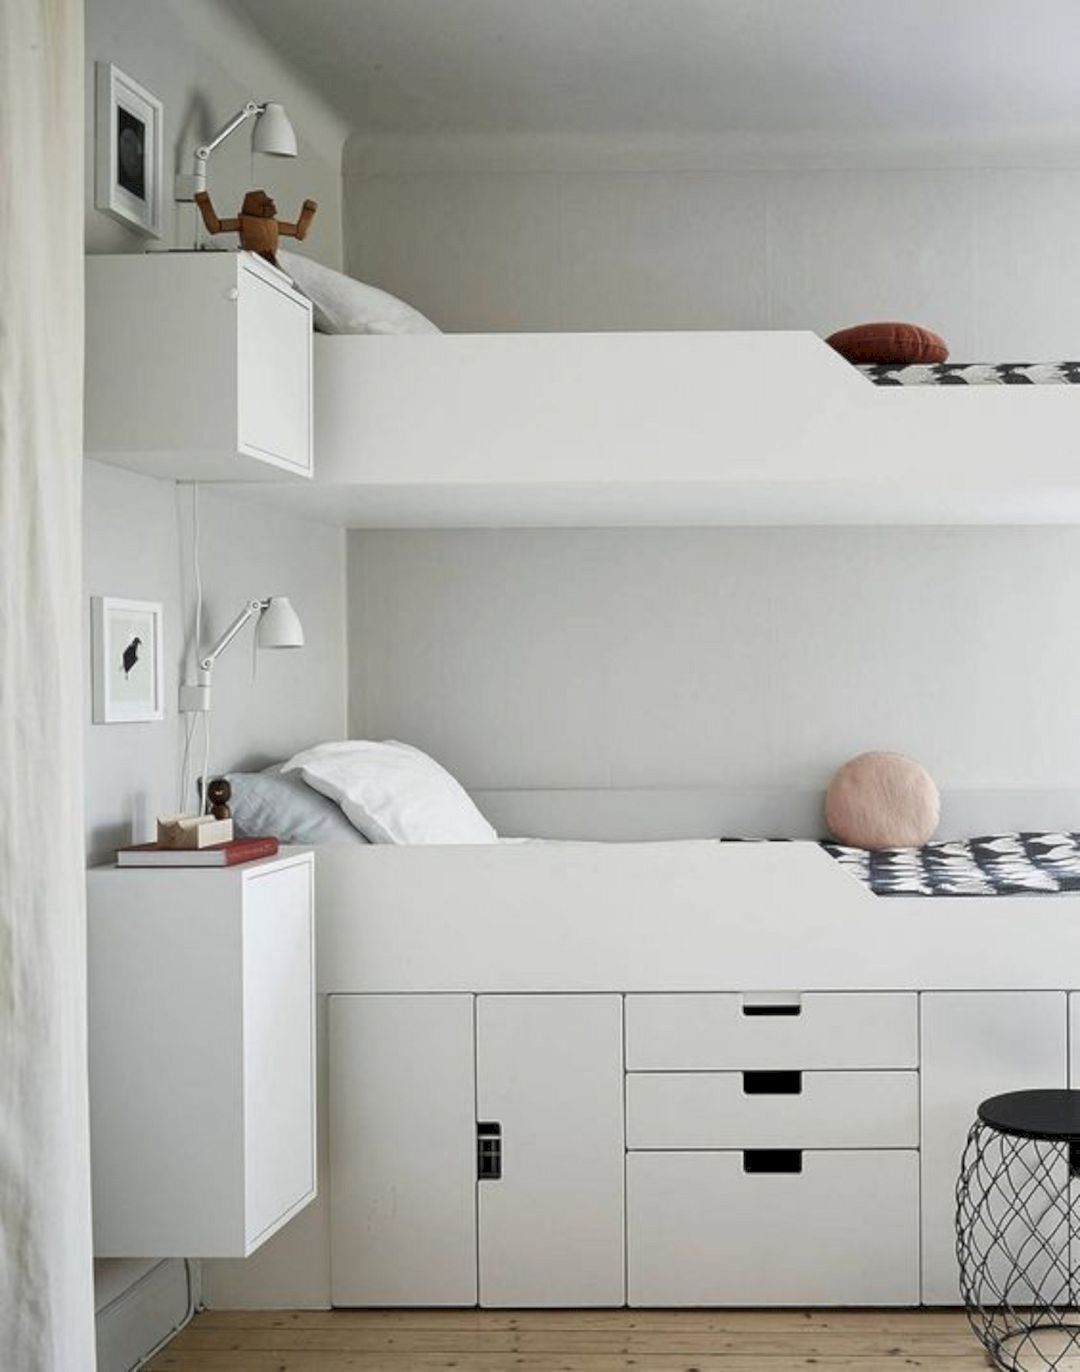 Best Charming Kid's Room Decor Ideas   Room decor, Kids rooms and Kids on hide television design ideas, bedroom designs, western bedroom ideas, bedroom wall art, shelving ideas, bedroom shelf for candles, storage for small bedrooms ideas, beautiful bedroom ideas,